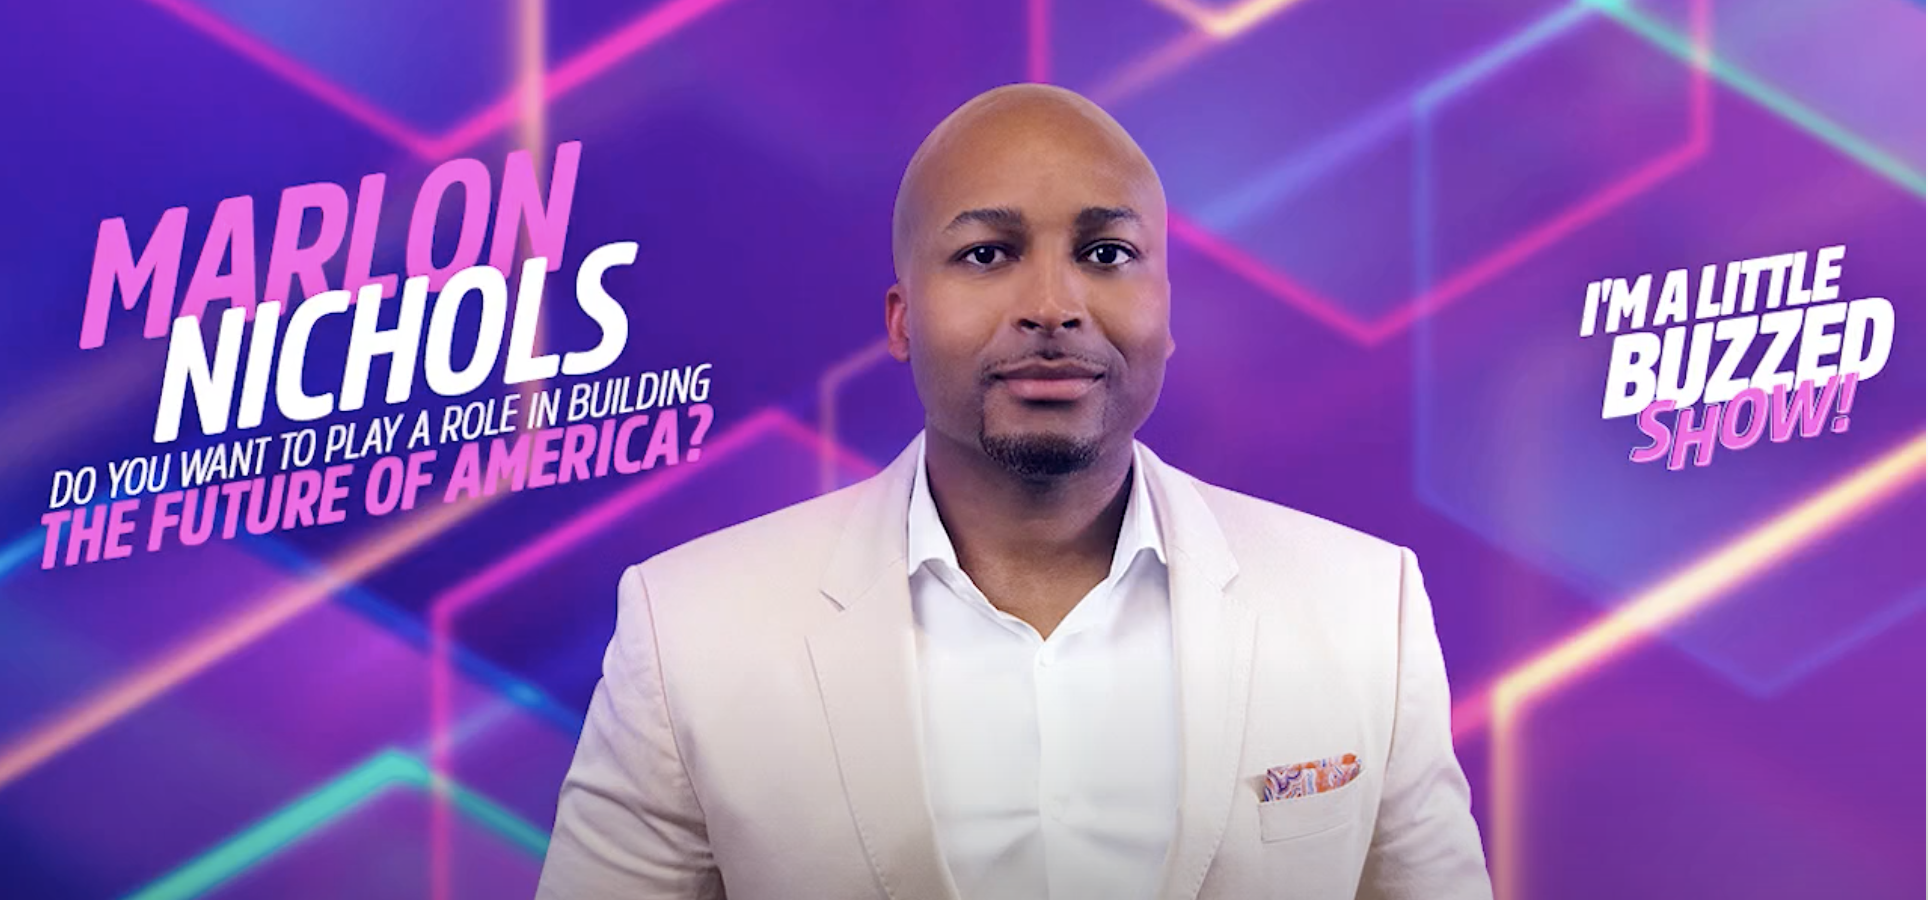 Marlon Nichols x No Bull Business' #ImaLittleBuzzed on Diversity and Inclusion